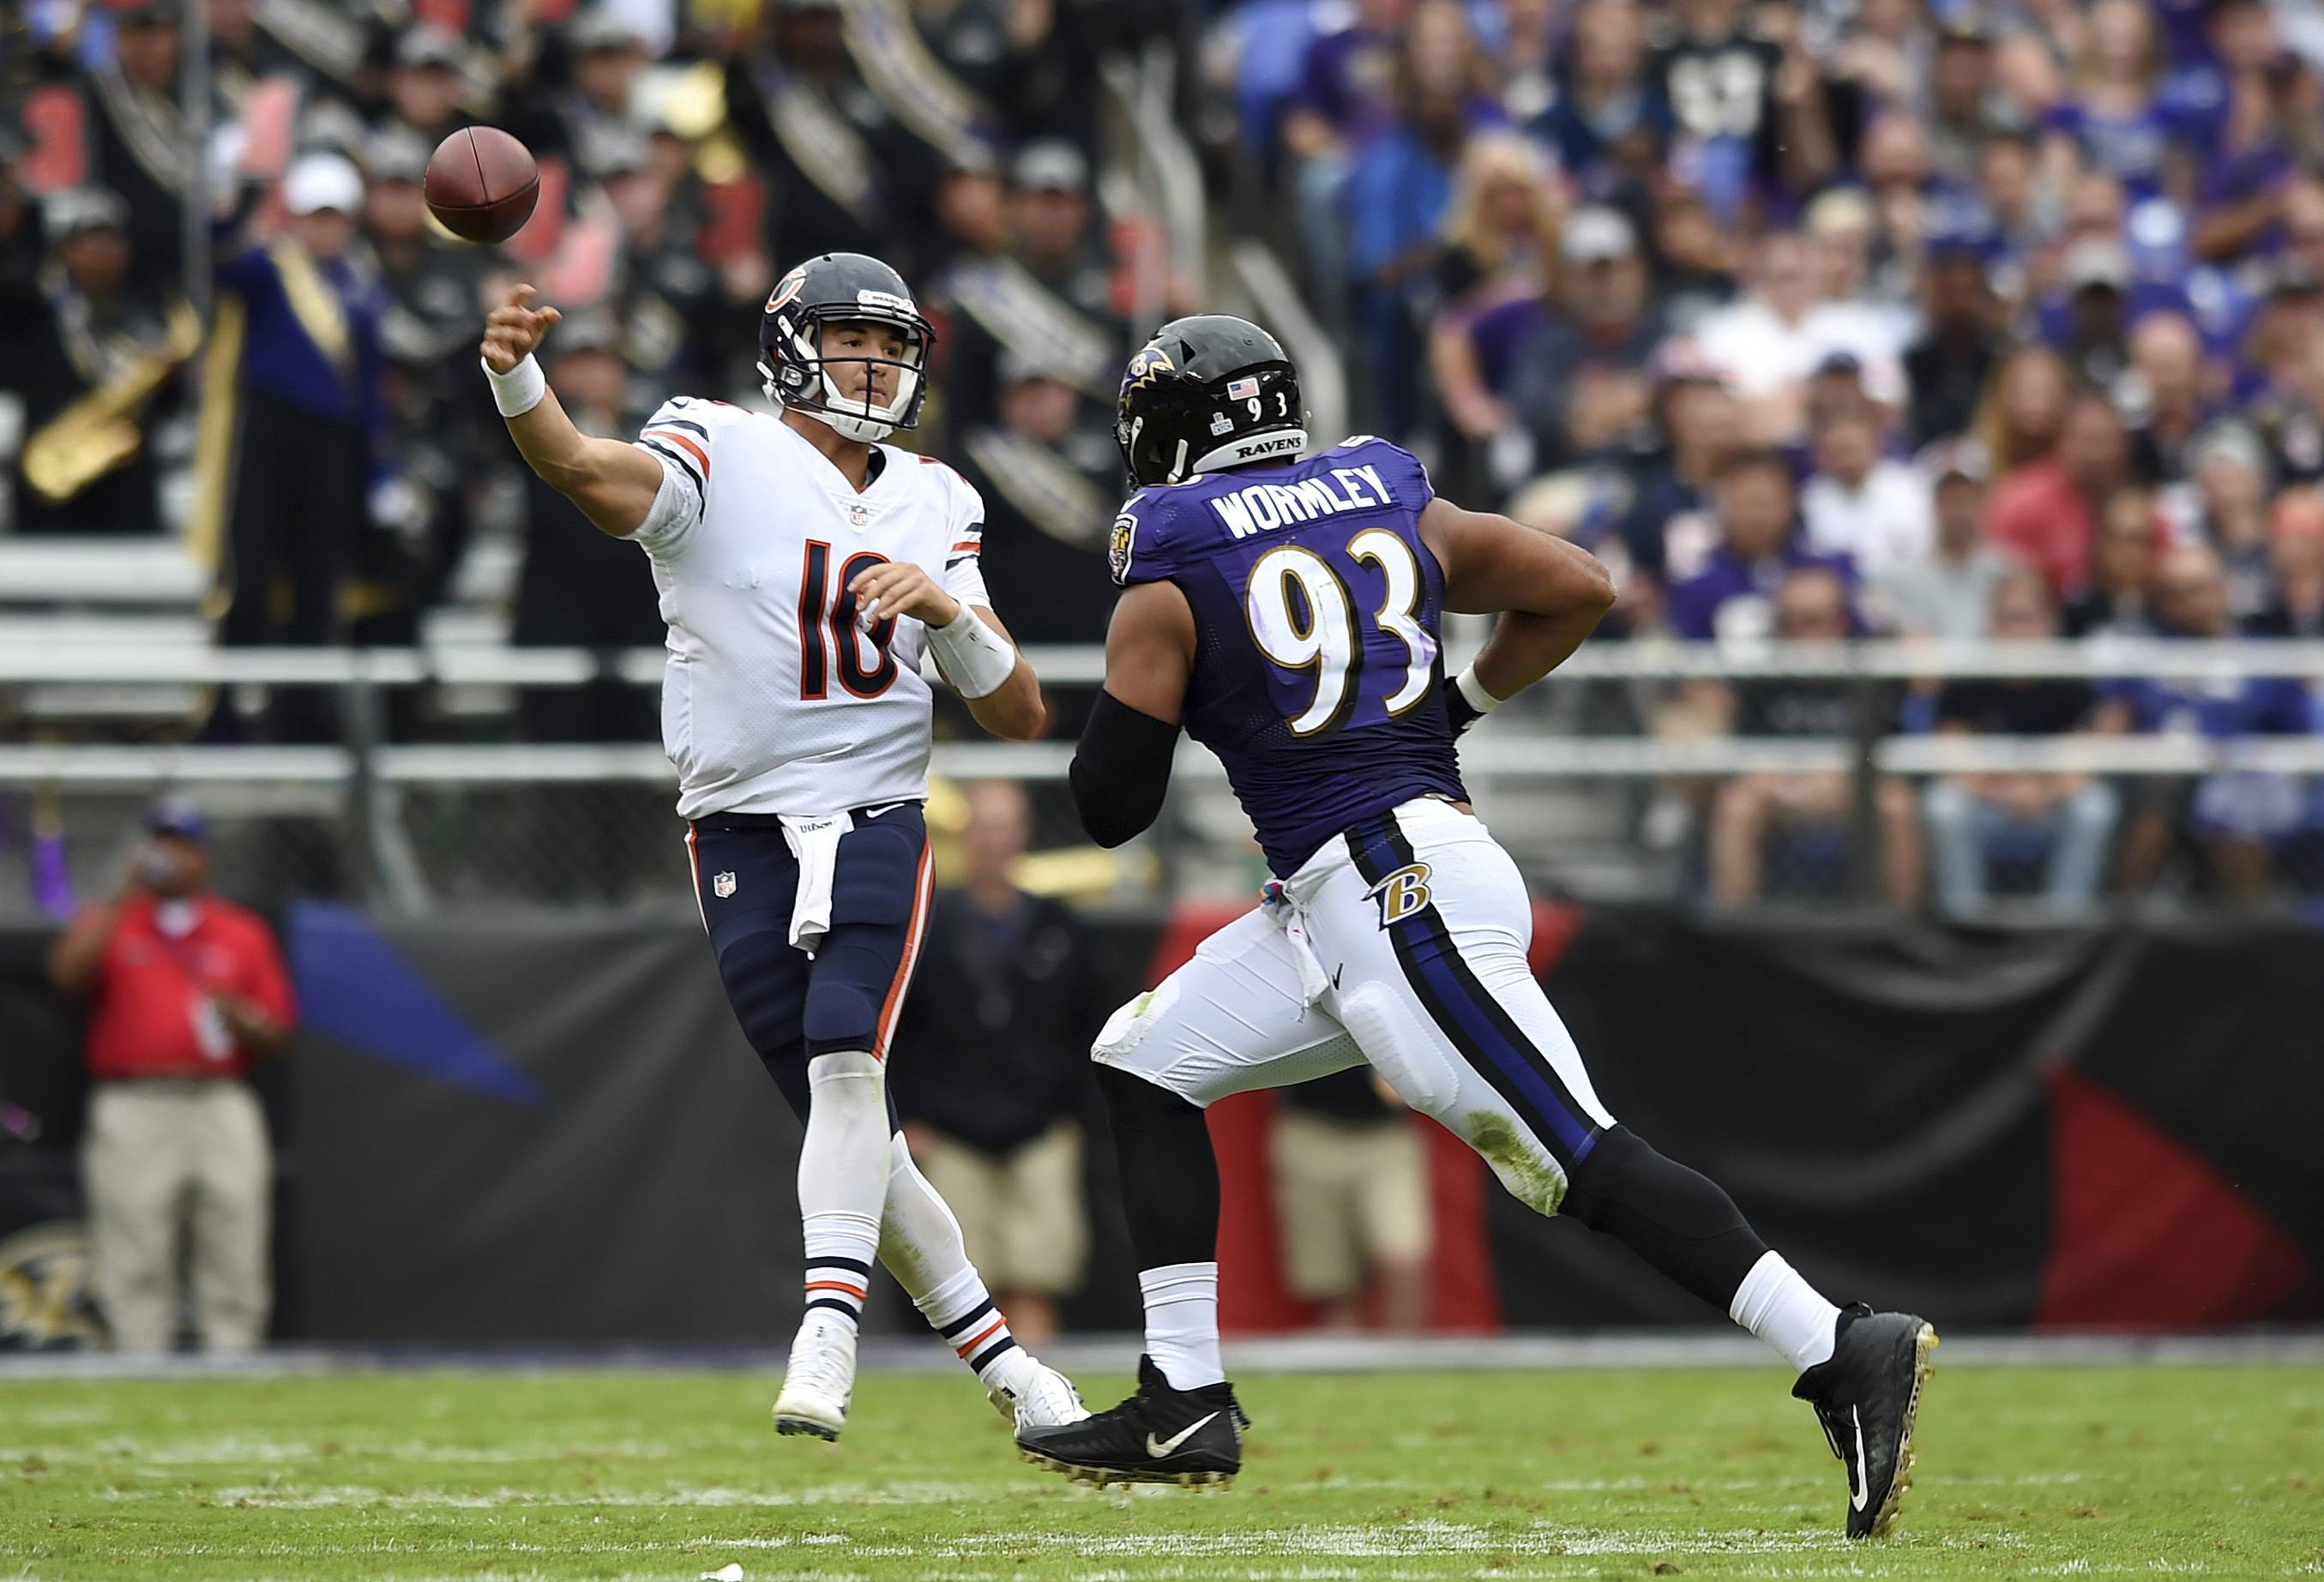 Chicago Bears quarterback Mitchell Trubisky, left, throws to a receiver as he is pressured by Baltimore Ravens defensive end Chris Wormley in the second half of an NFL football game, Sunday, Oct. 15, 2017, in Baltimore.